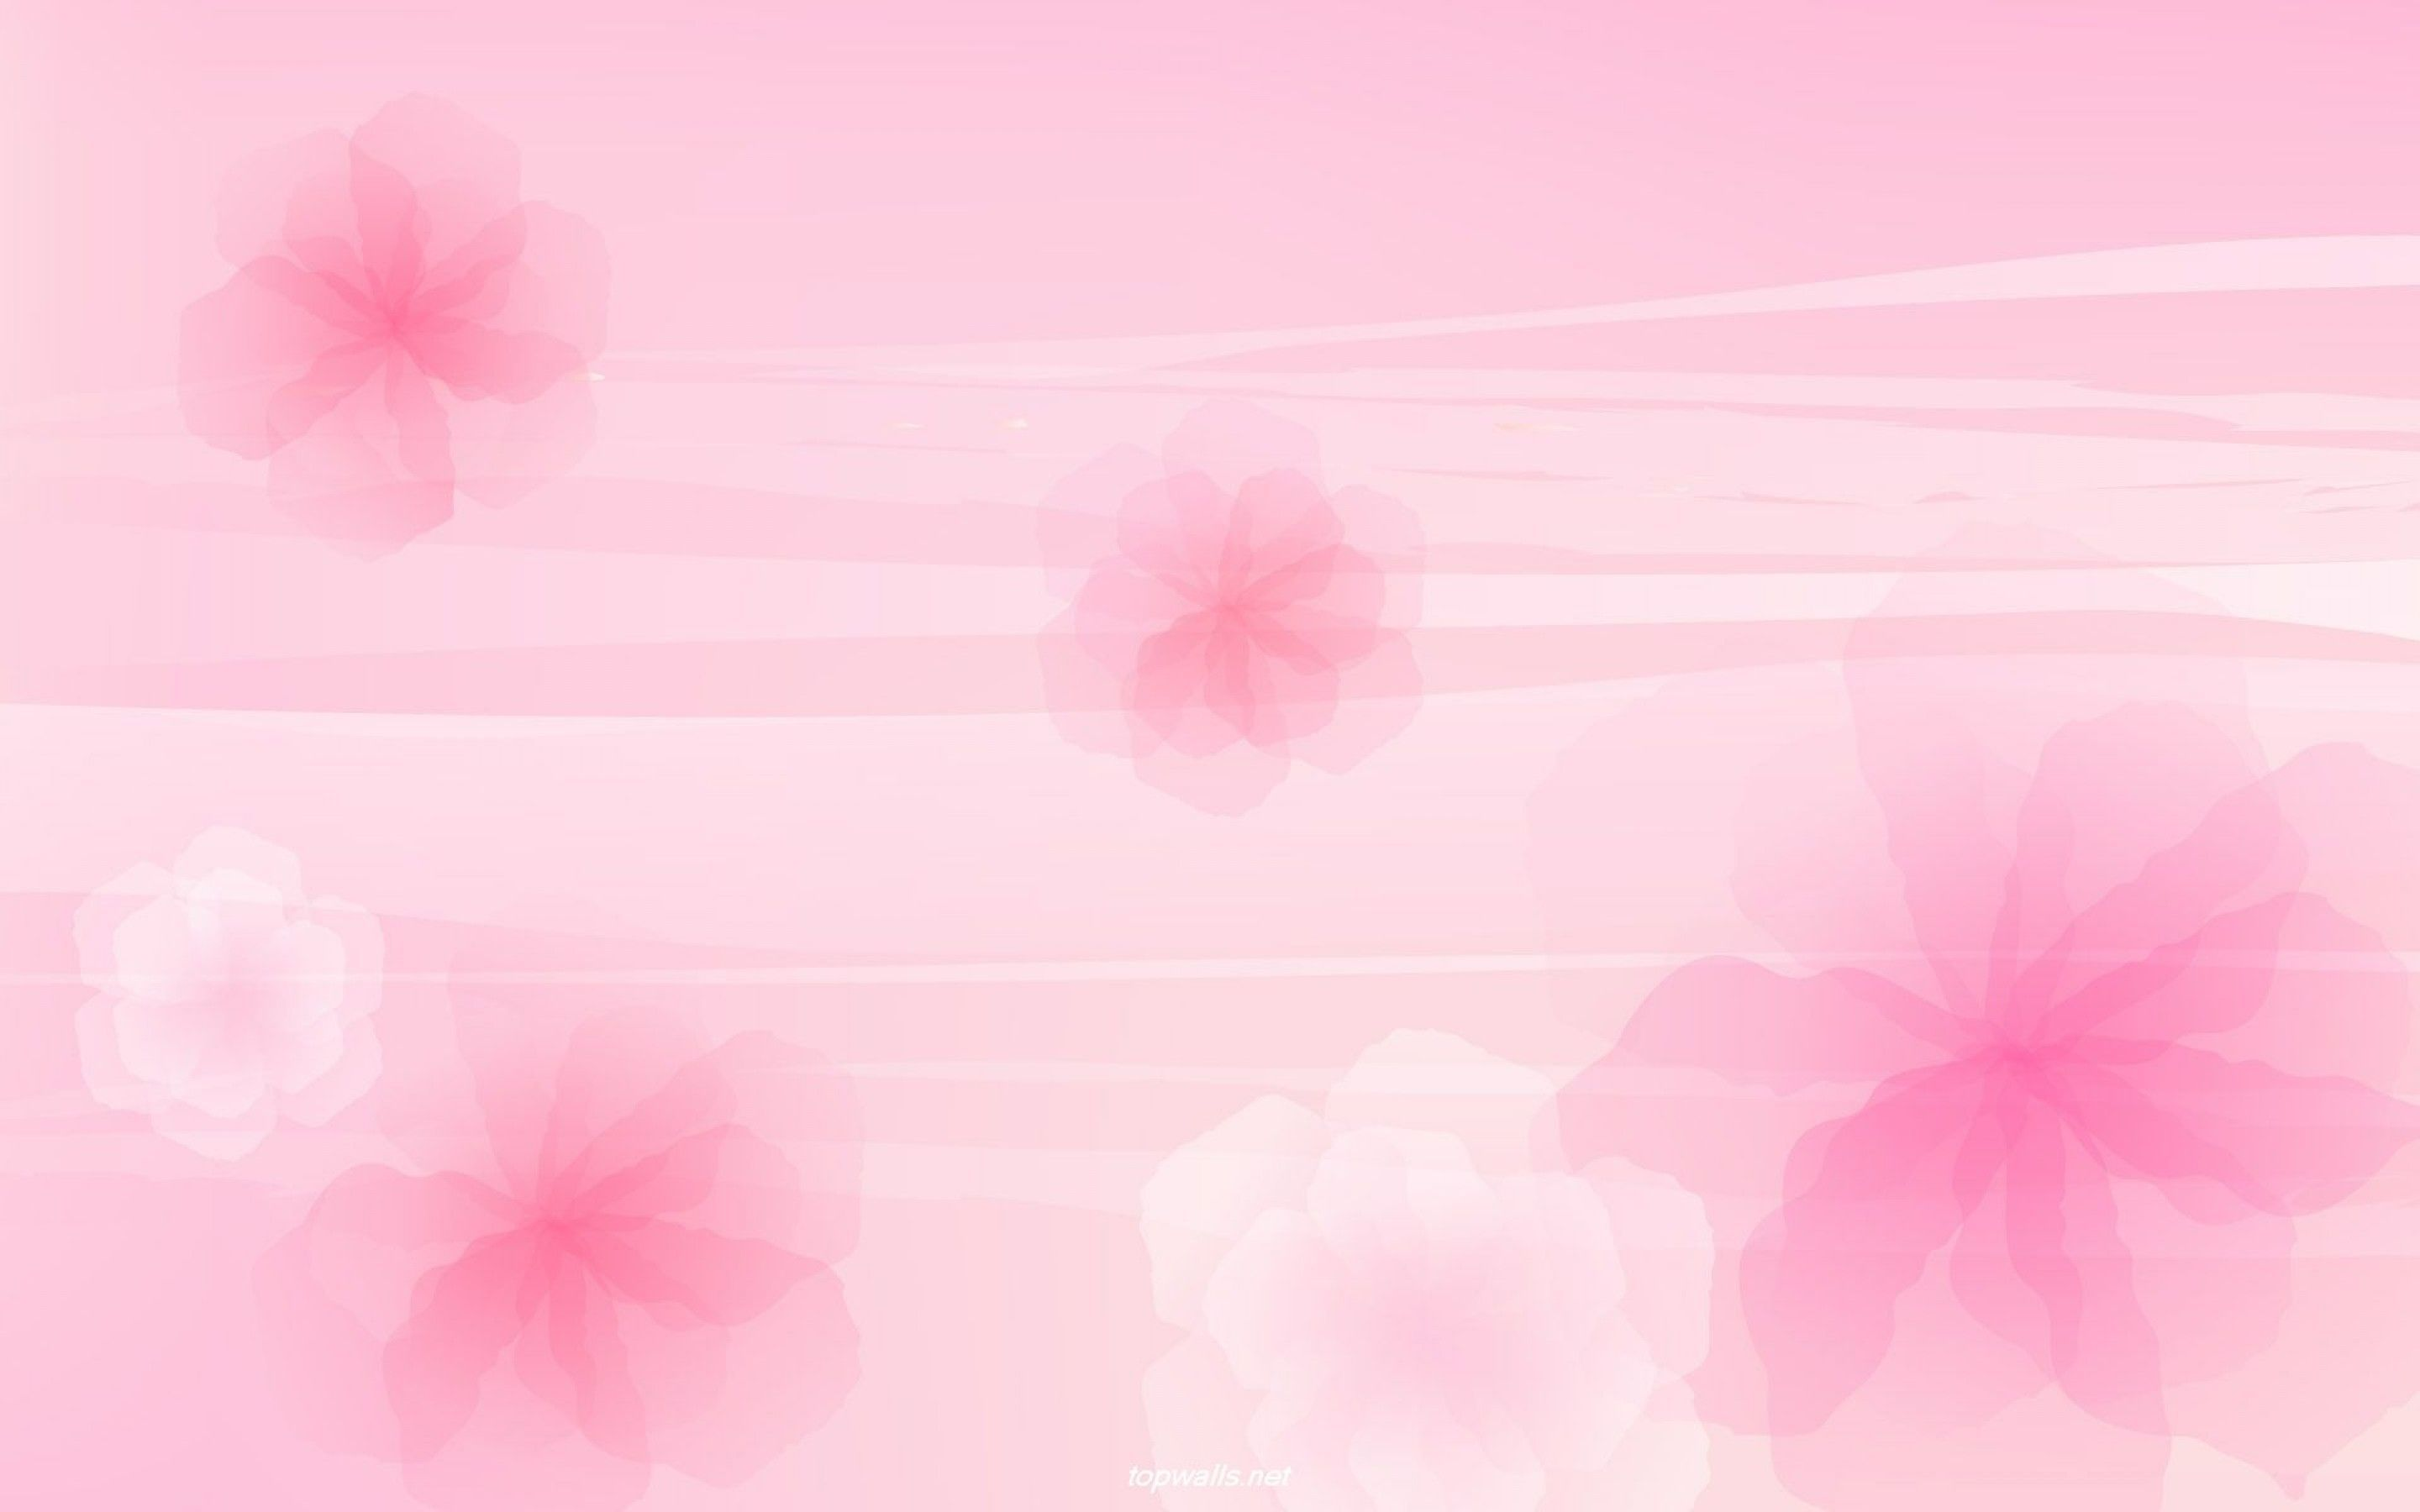 Hd Light Pink Backgrounds Pink Flowers Background Pink Wallpaper Colour Pink Background Images